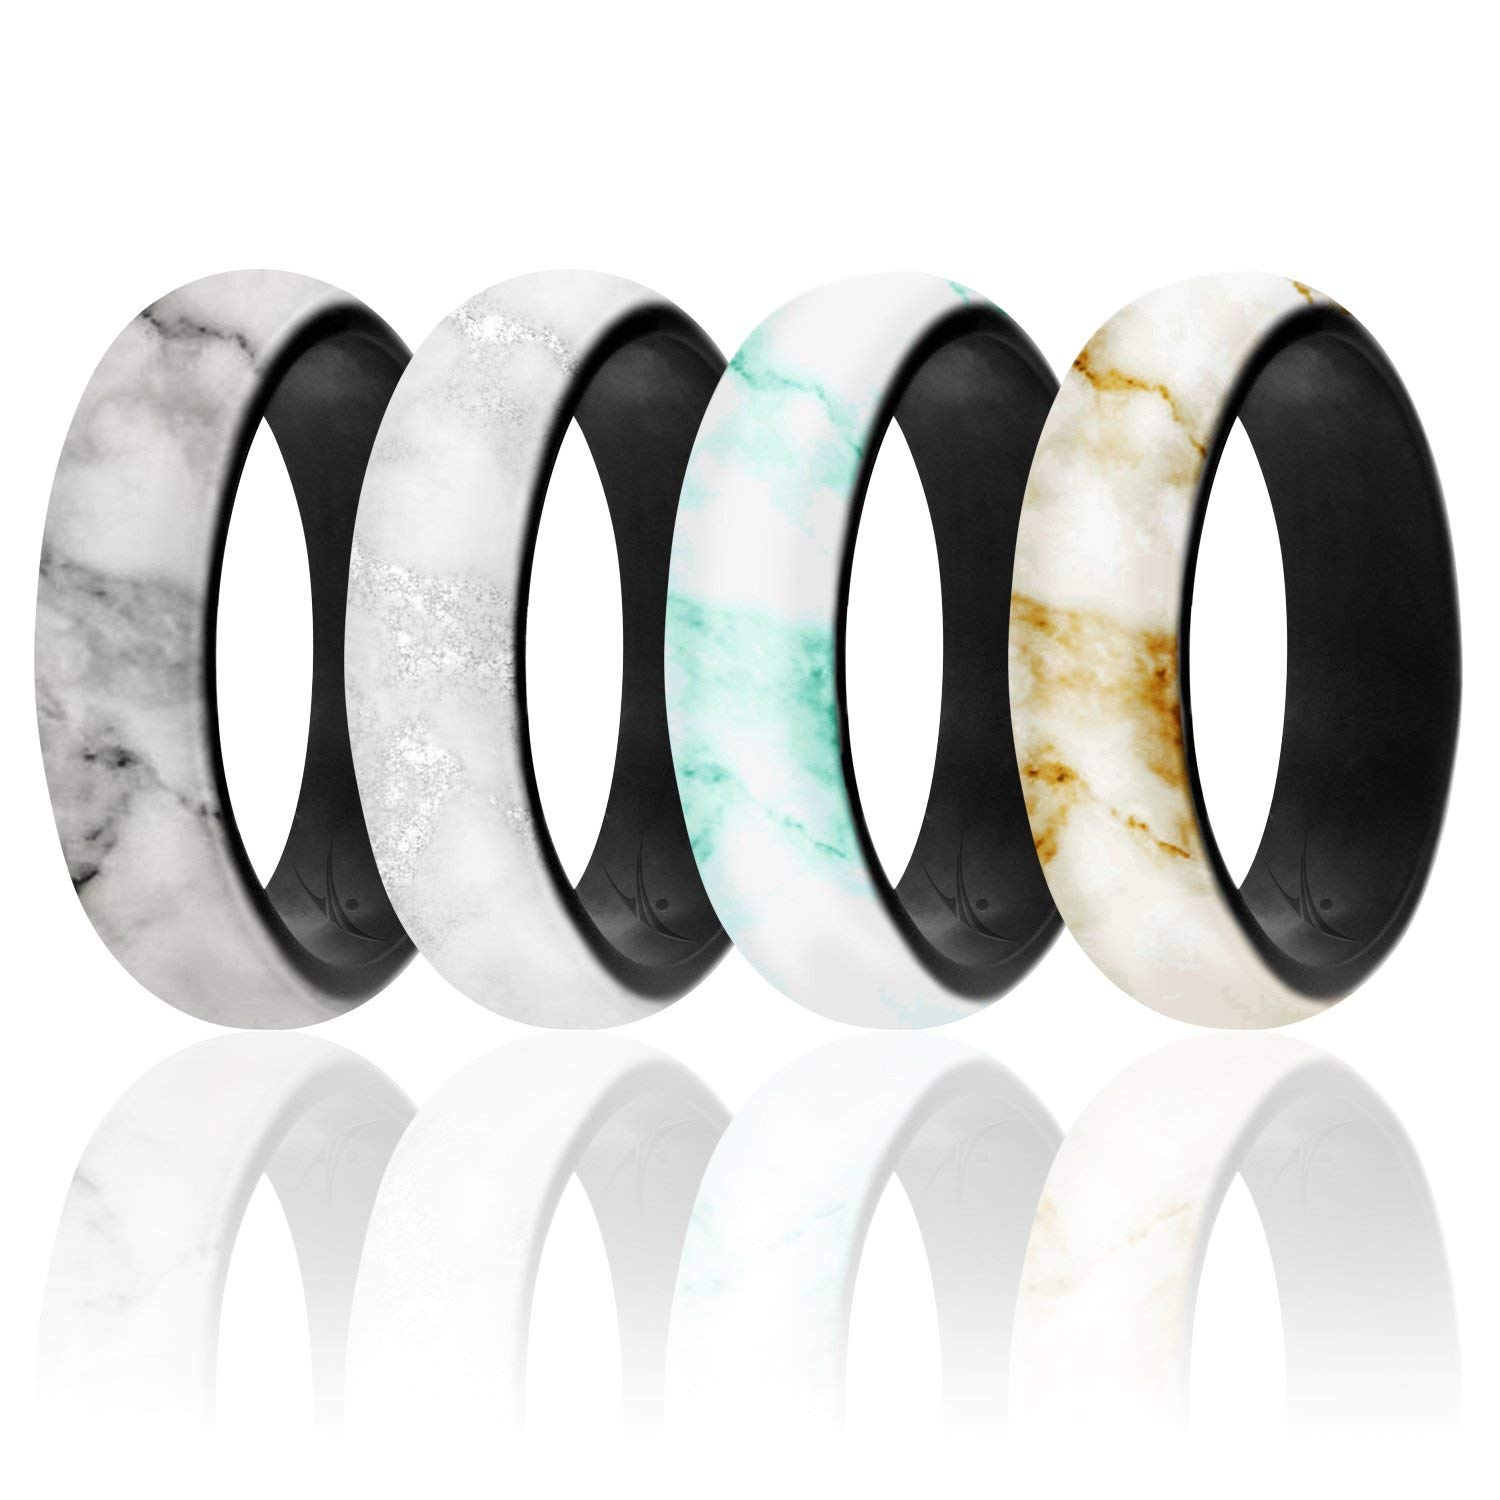 Marble Dome Style Affordable 4 Pack of Silicone Rubber Rings Metallic ROQ Silicone Wedding Ring for Women 2 Colors Flexible Safe Glitter Light with Classic Design Matte